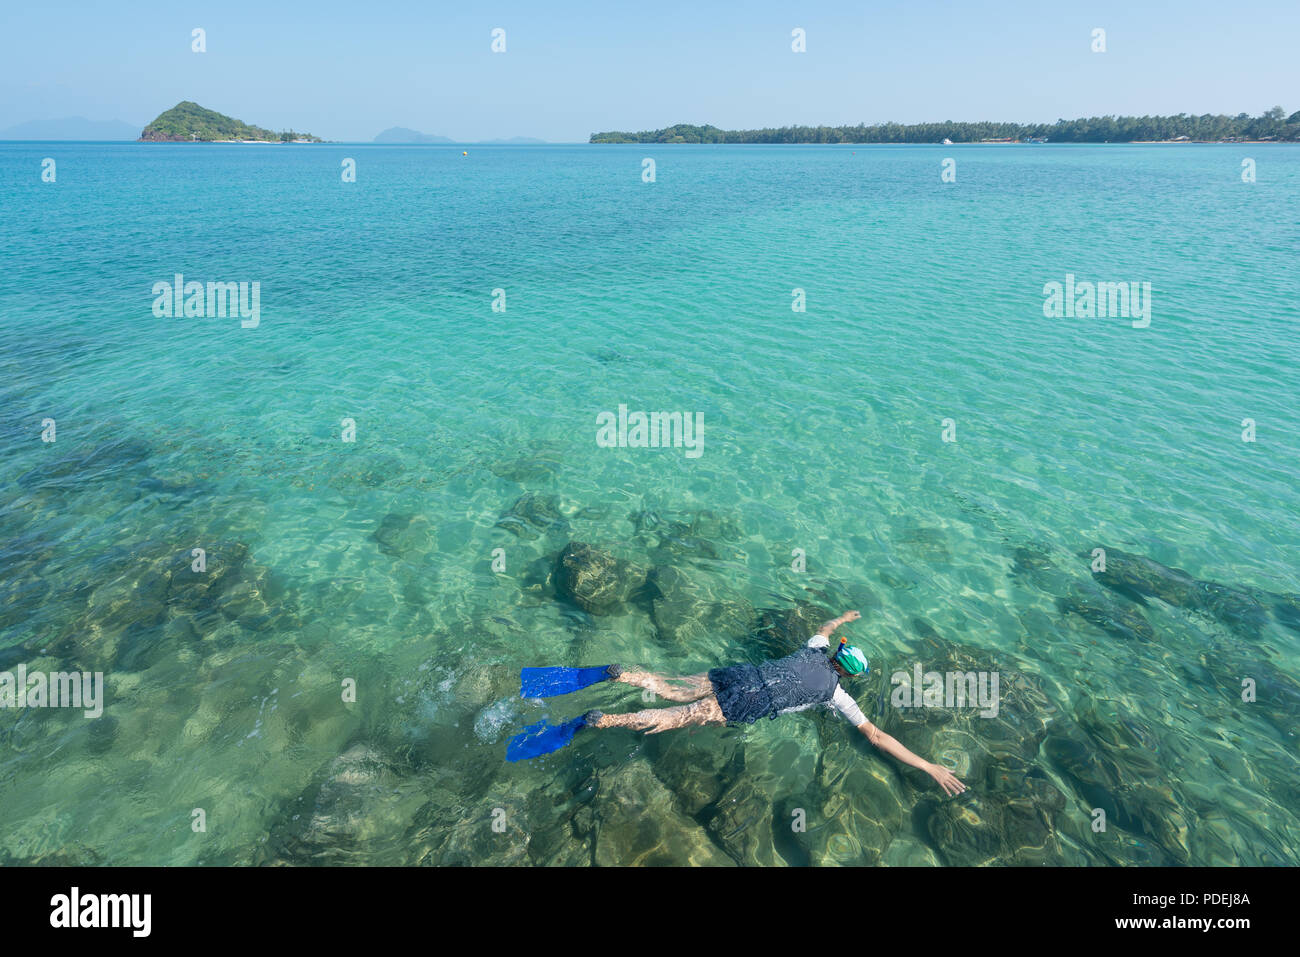 Tourists snorkel in crystal turquoise water near tropical resort in Phuket, Thailand. Summer, Vacation, Travel and Holiday concept. - Stock Image